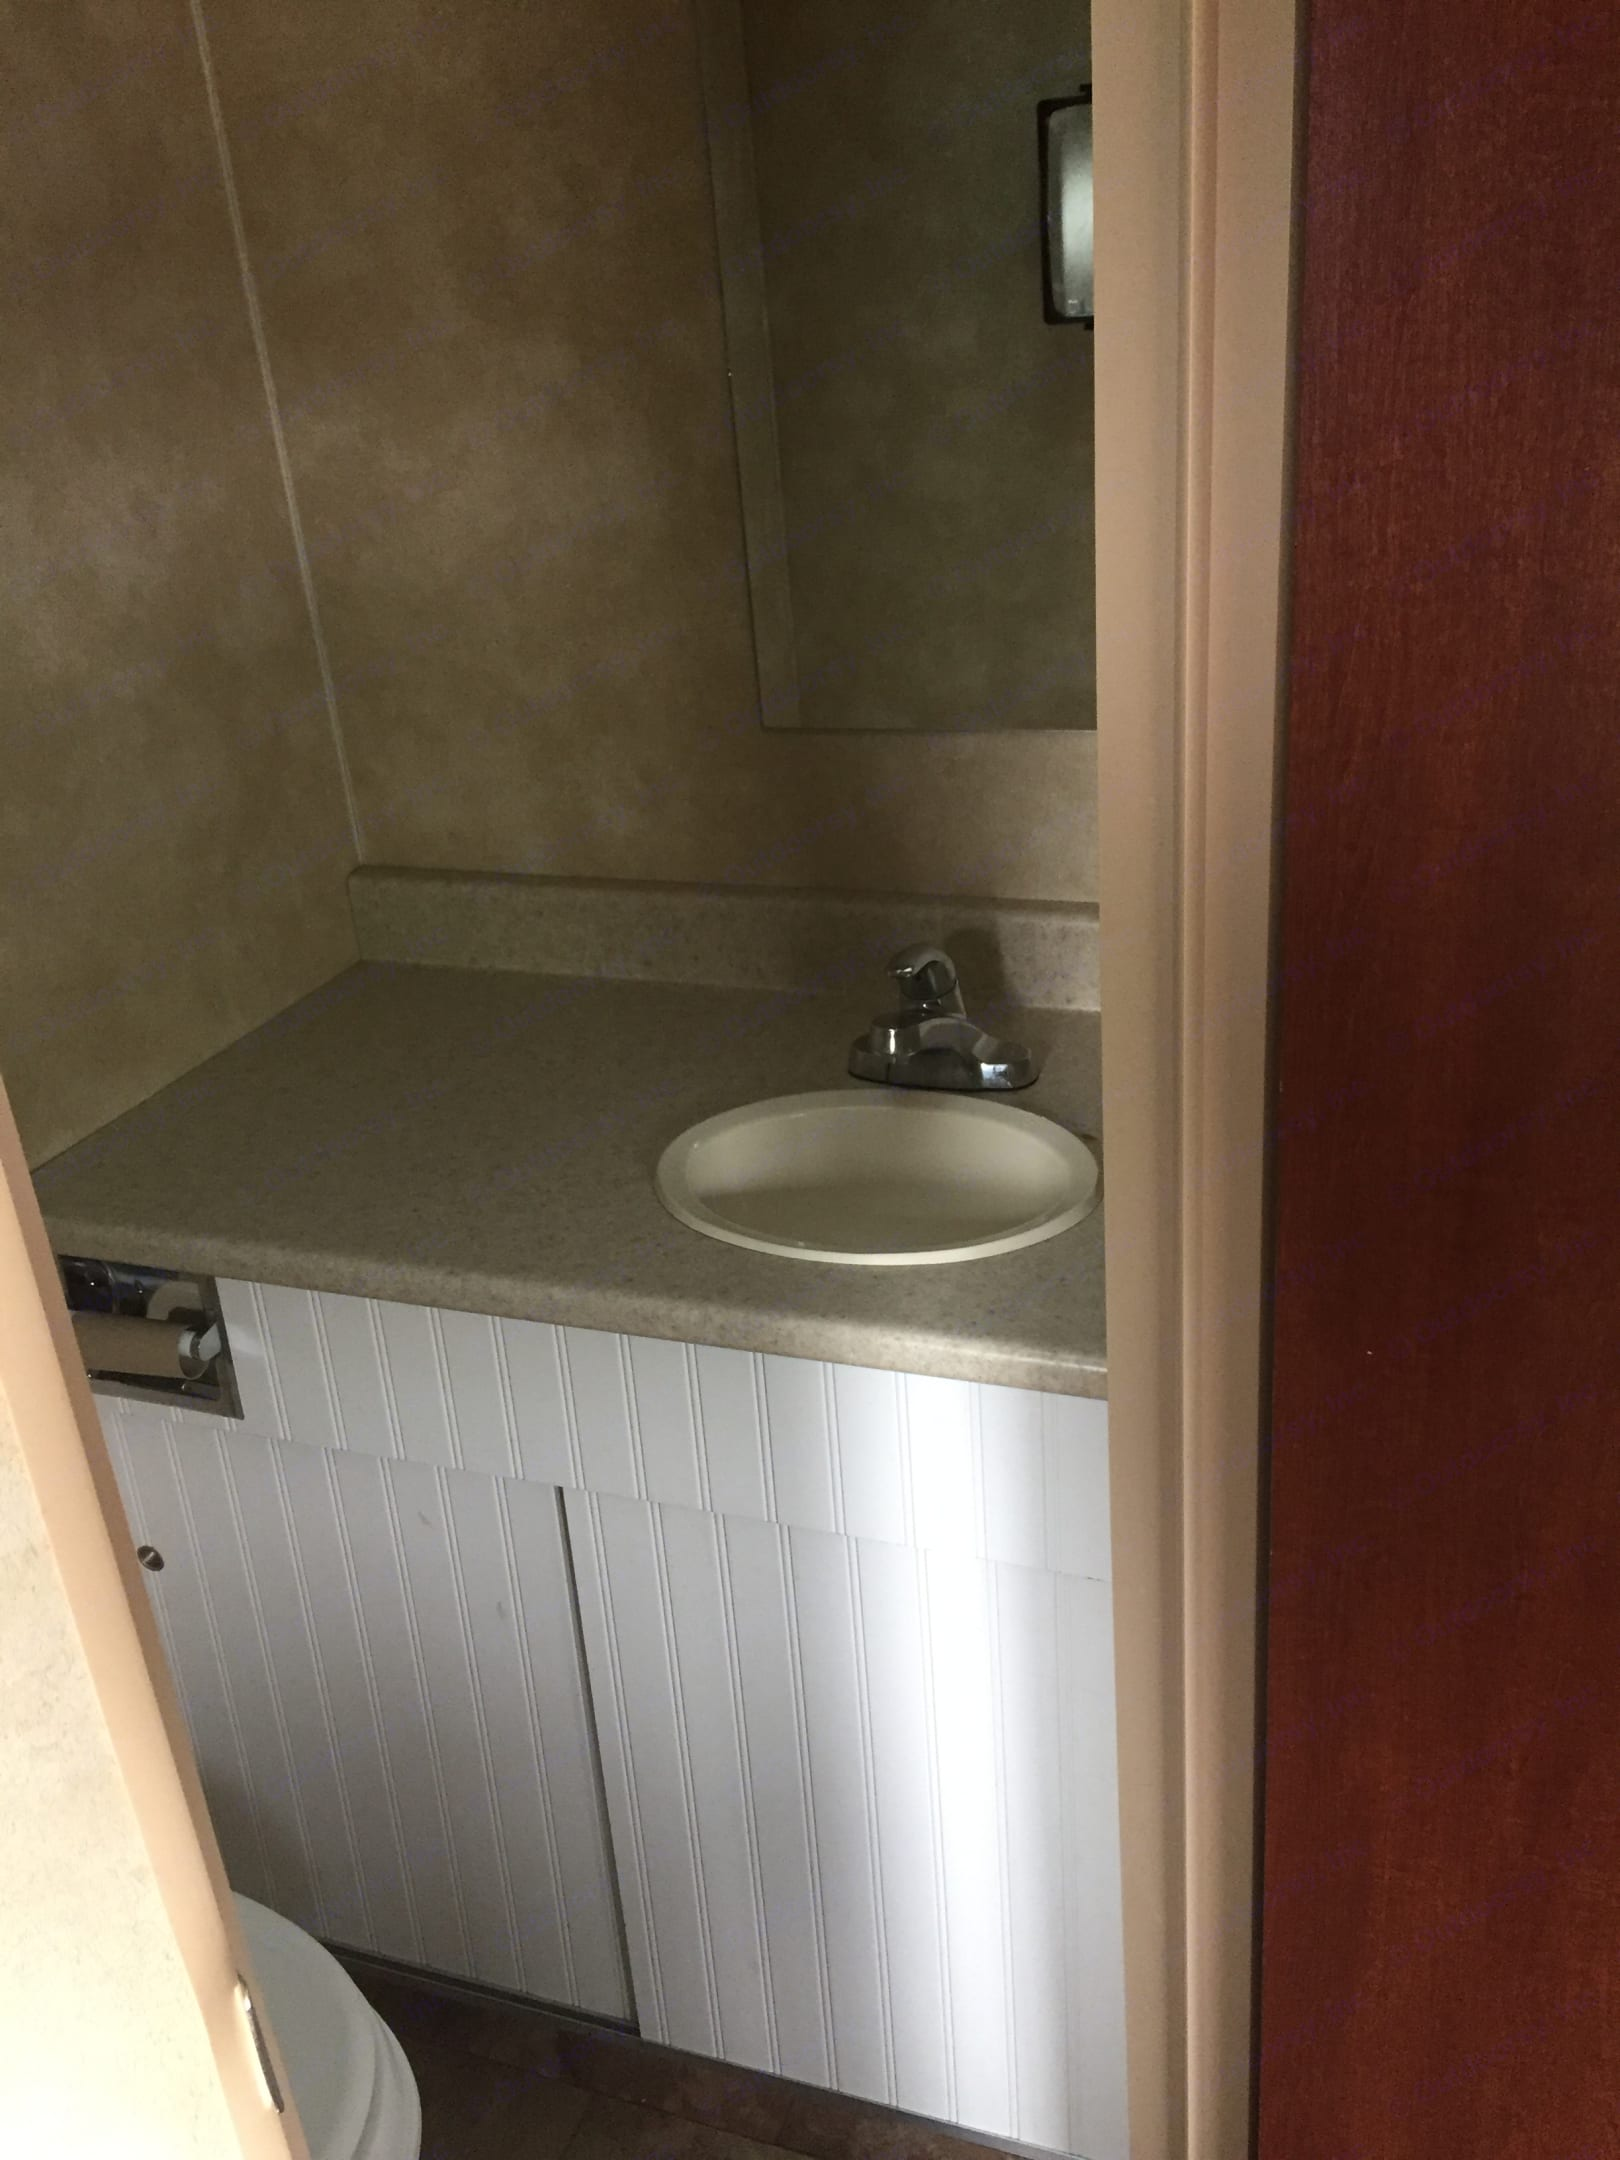 there is no shower as the previous owner built in a small vanity and sink . Coachmen Viking 2013